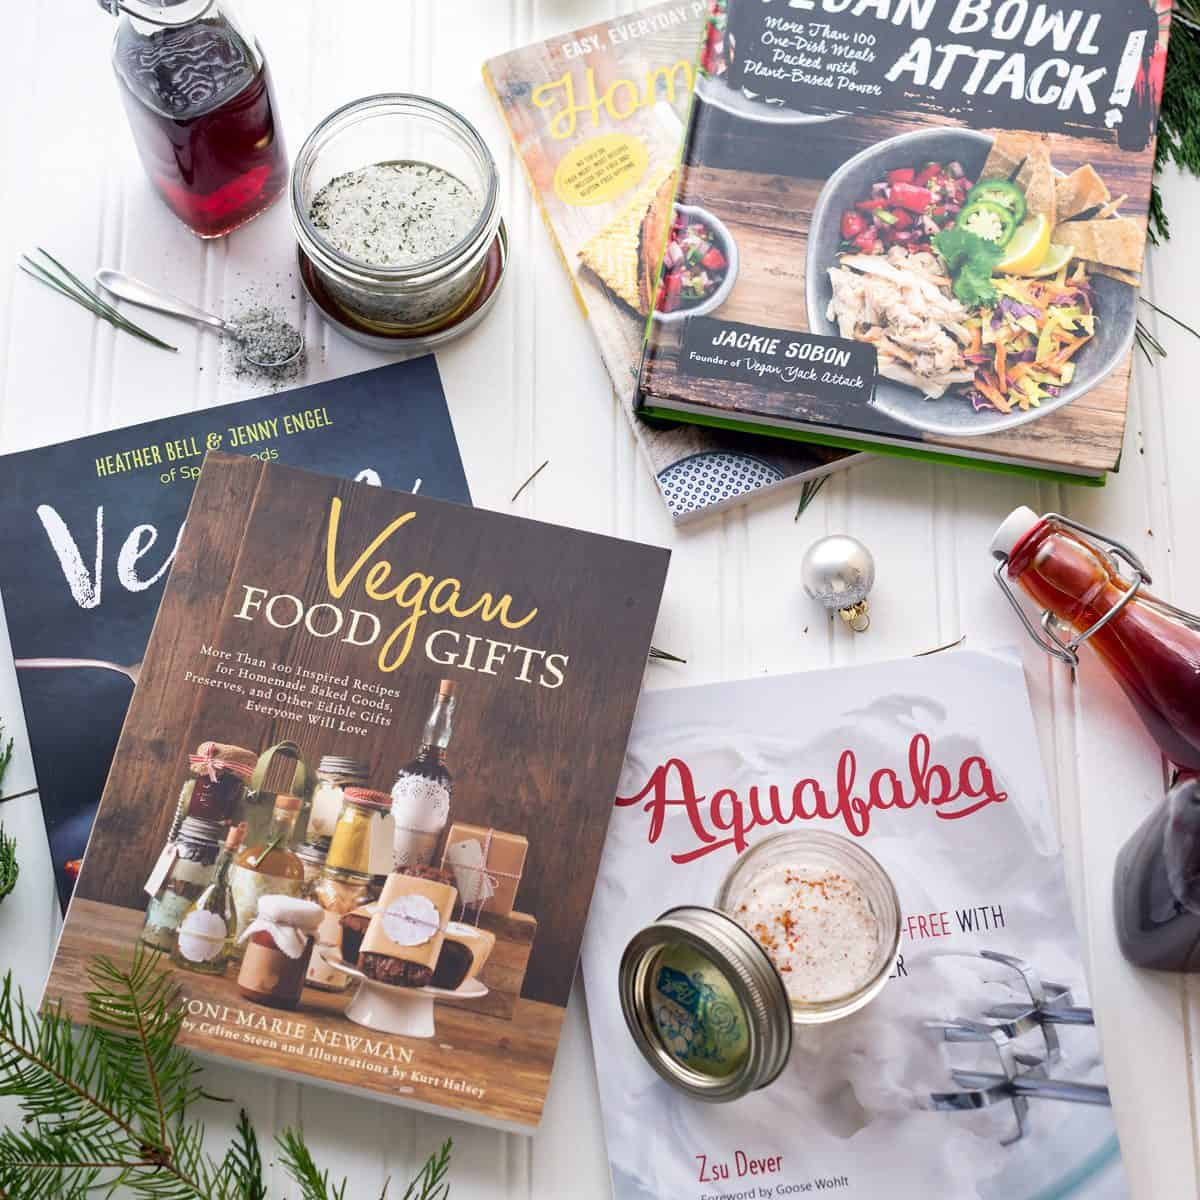 Vegan Gift Guide + Homemade Gifts - Great ideas for giving the right (vegan) gifts this year! Cookbooks, homemade liquor, a giveaway and more!